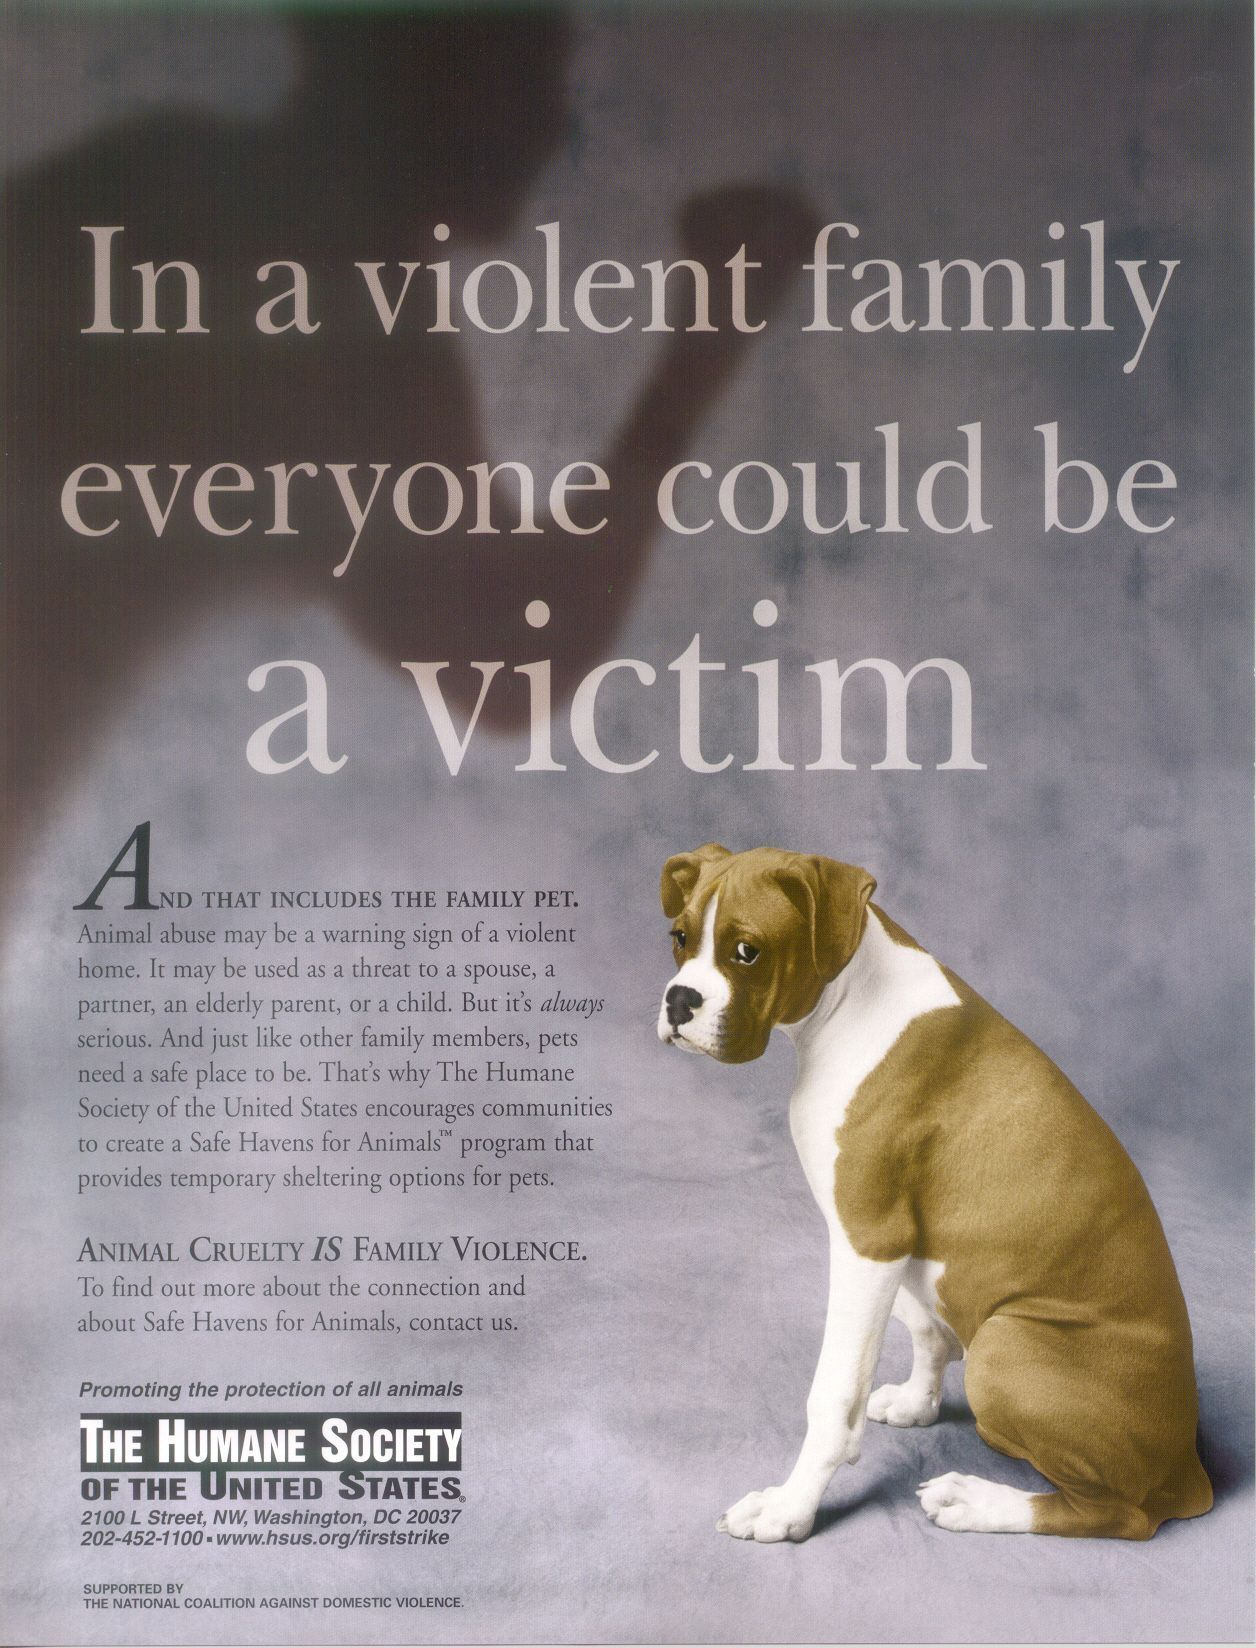 a description of the two articles in the issues of animal cruelty Read the latest news reports about cruelty to animals, animal cruelty laws, and other stories of dog and cat abuse on newsercom - page 1 | newser.